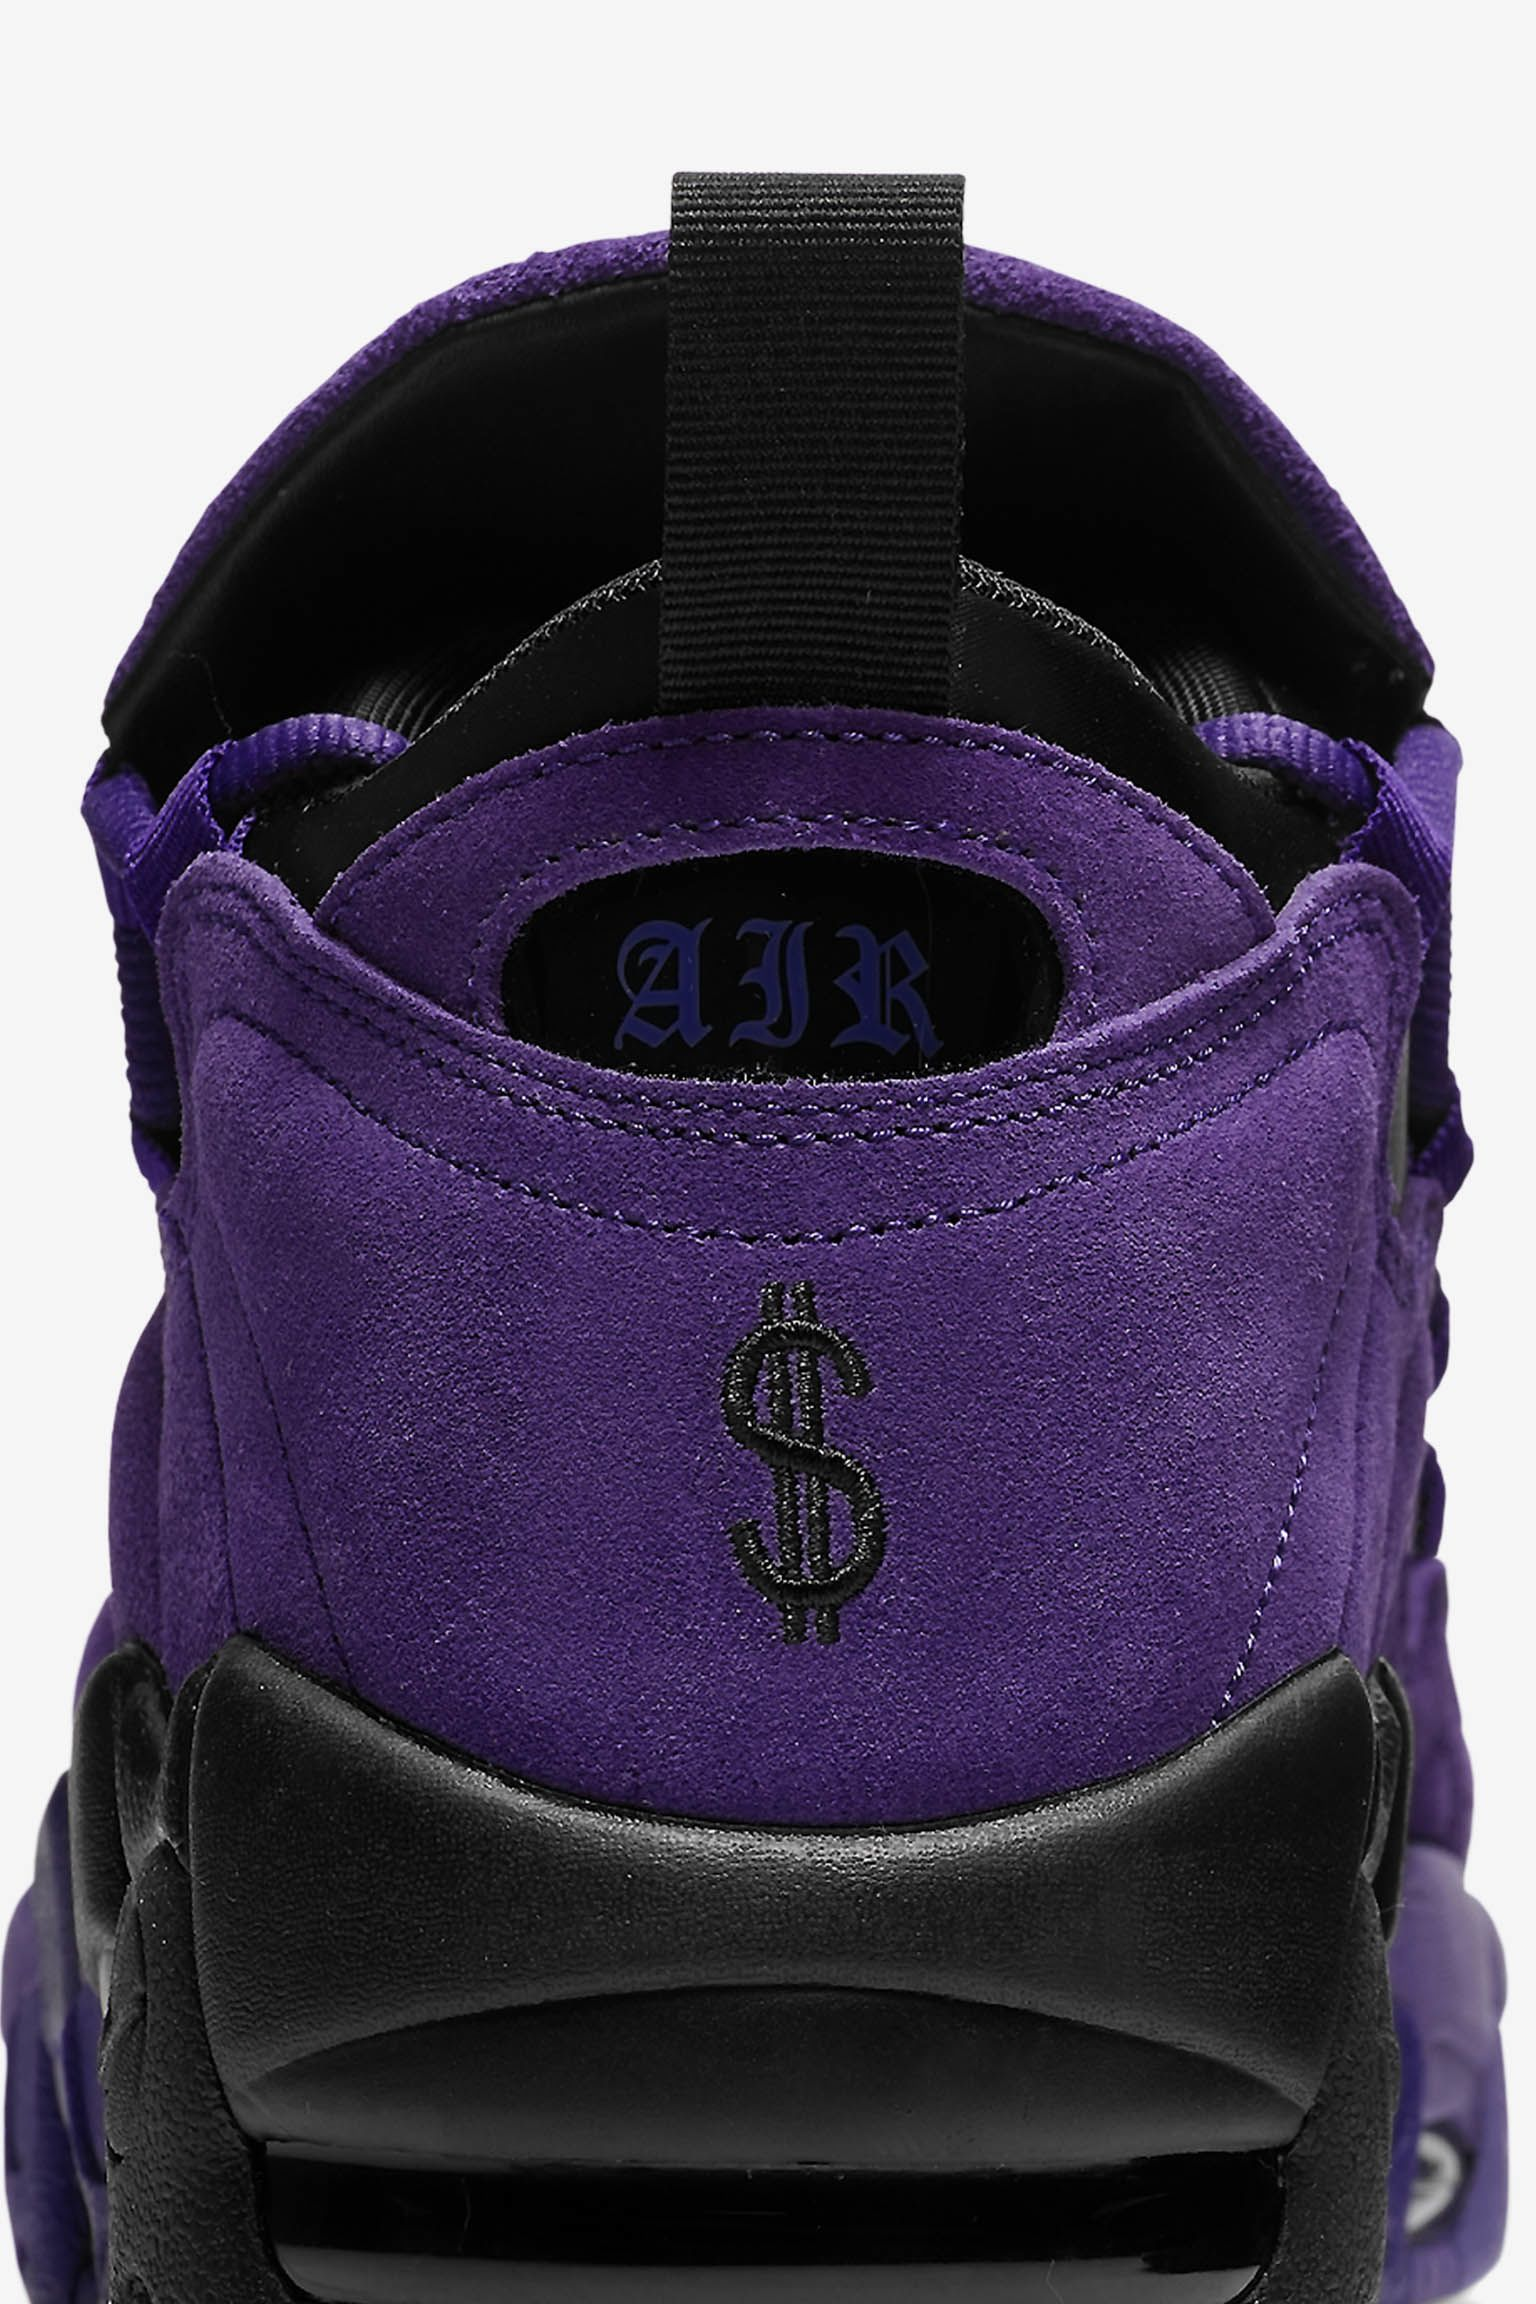 Nike Air More Money 'Court Purple & Black' Release Date